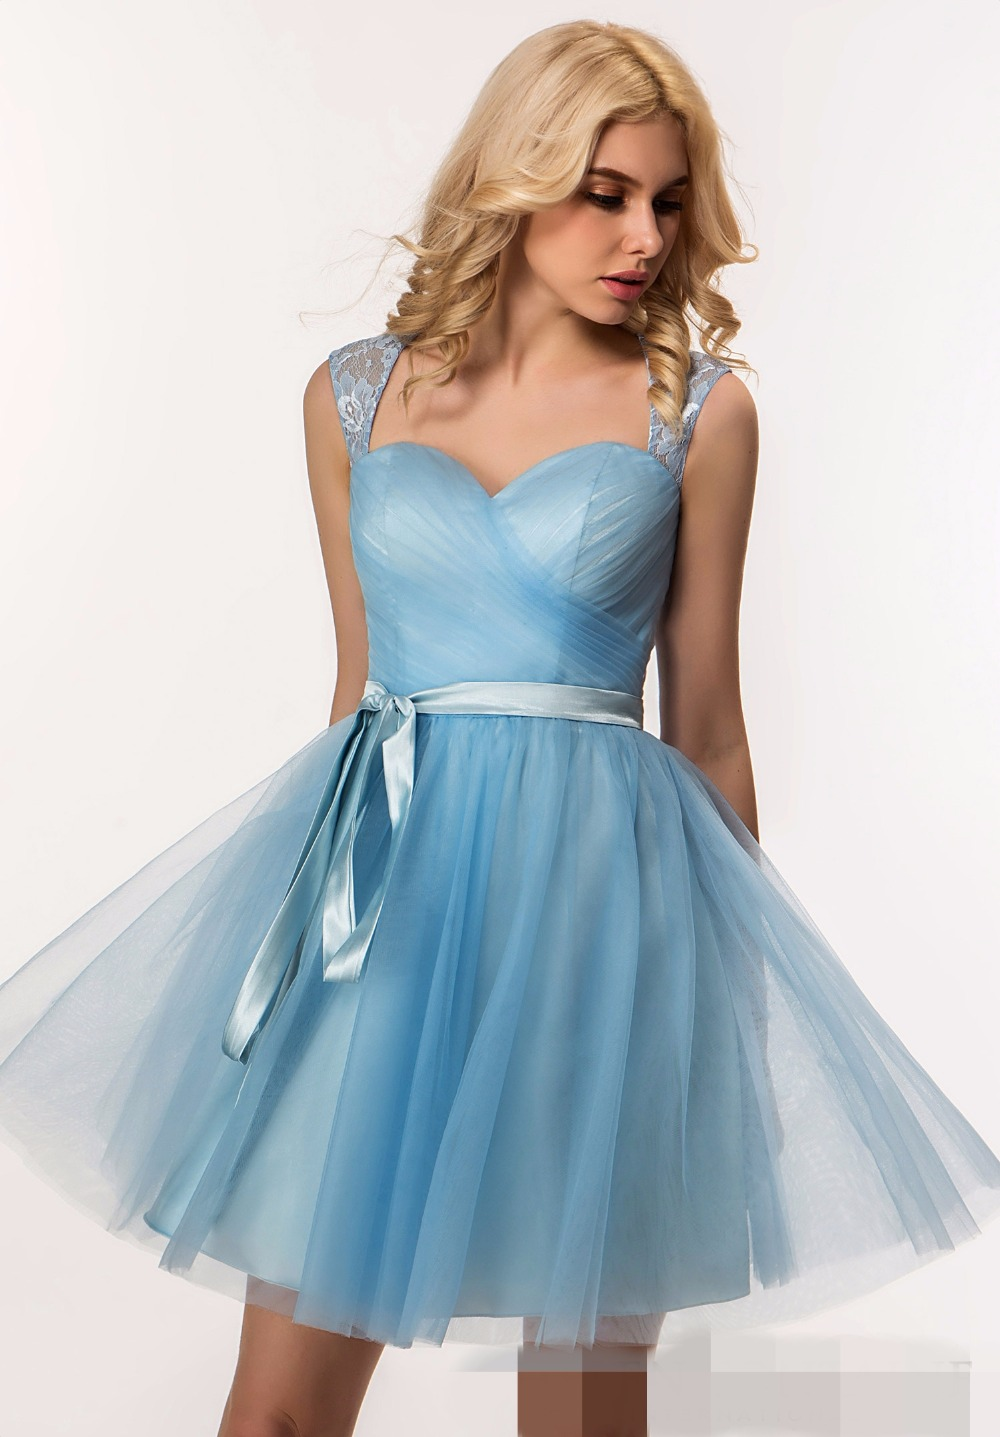 Beautiful Cute Dresses For Party Gift - Wedding Dress - googeb.com